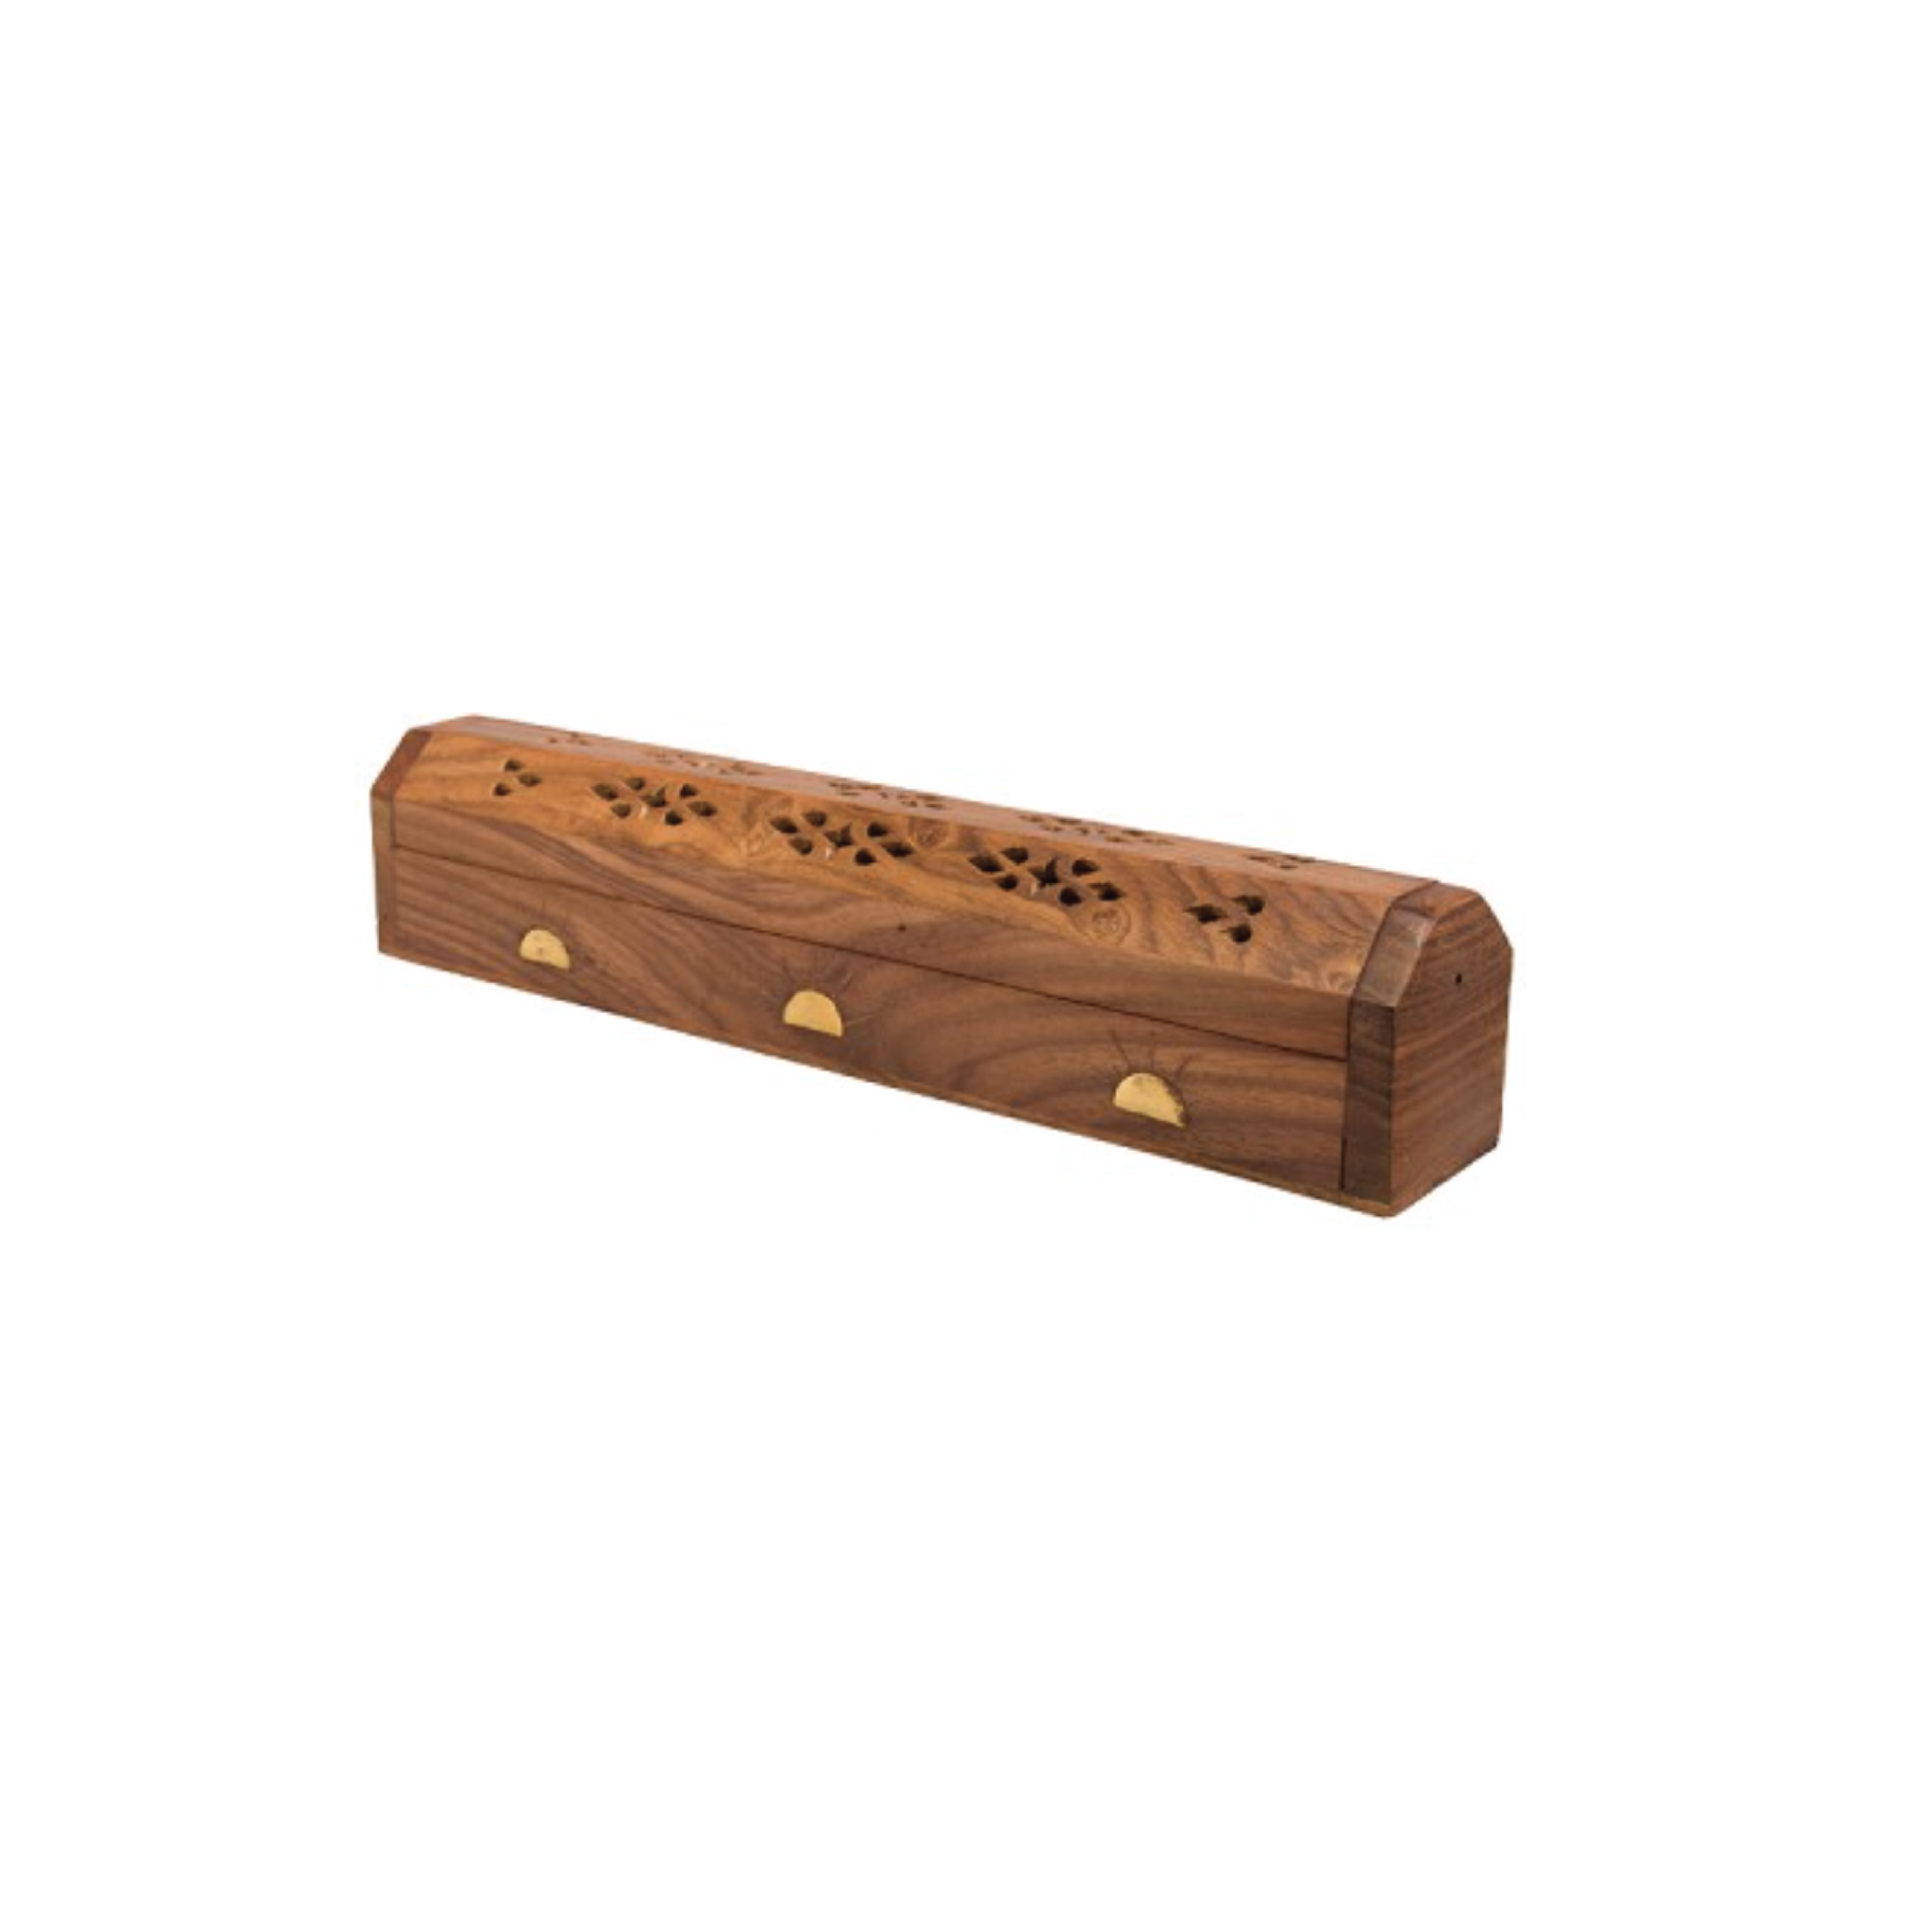 Brass & Inlay Wood Incense Holder